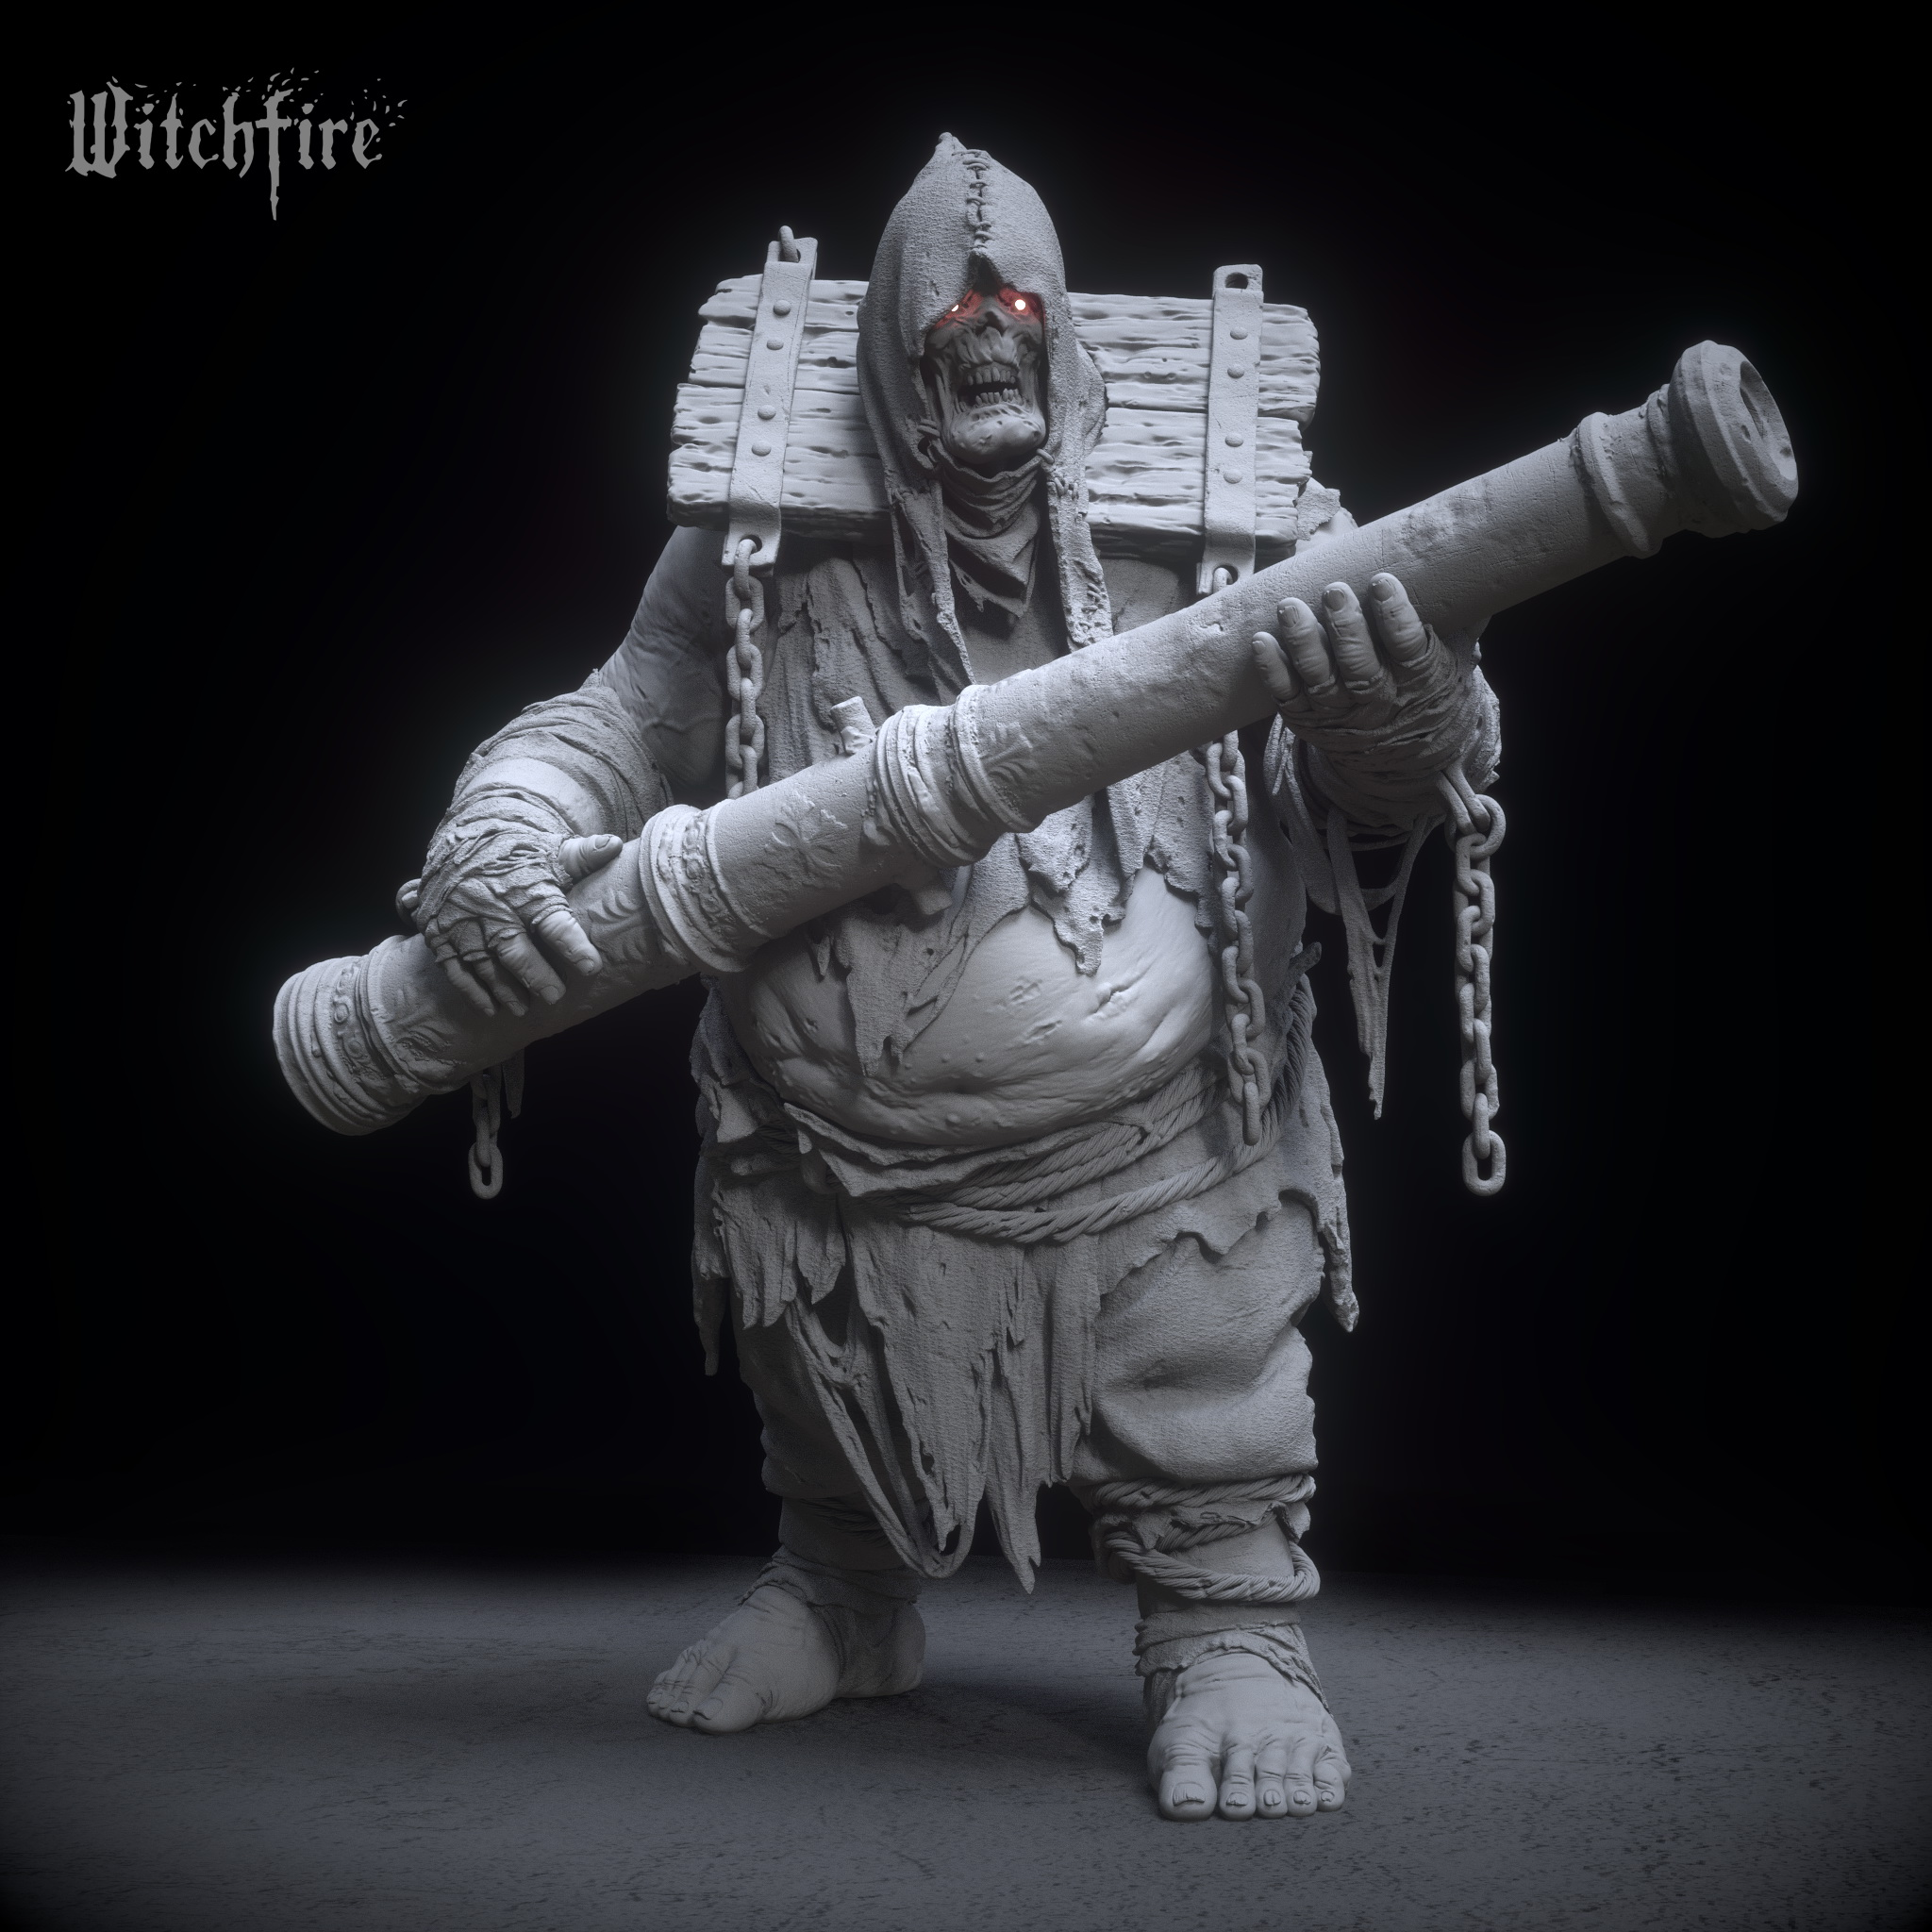 witchfire_ogr_render_20_clay.jpg